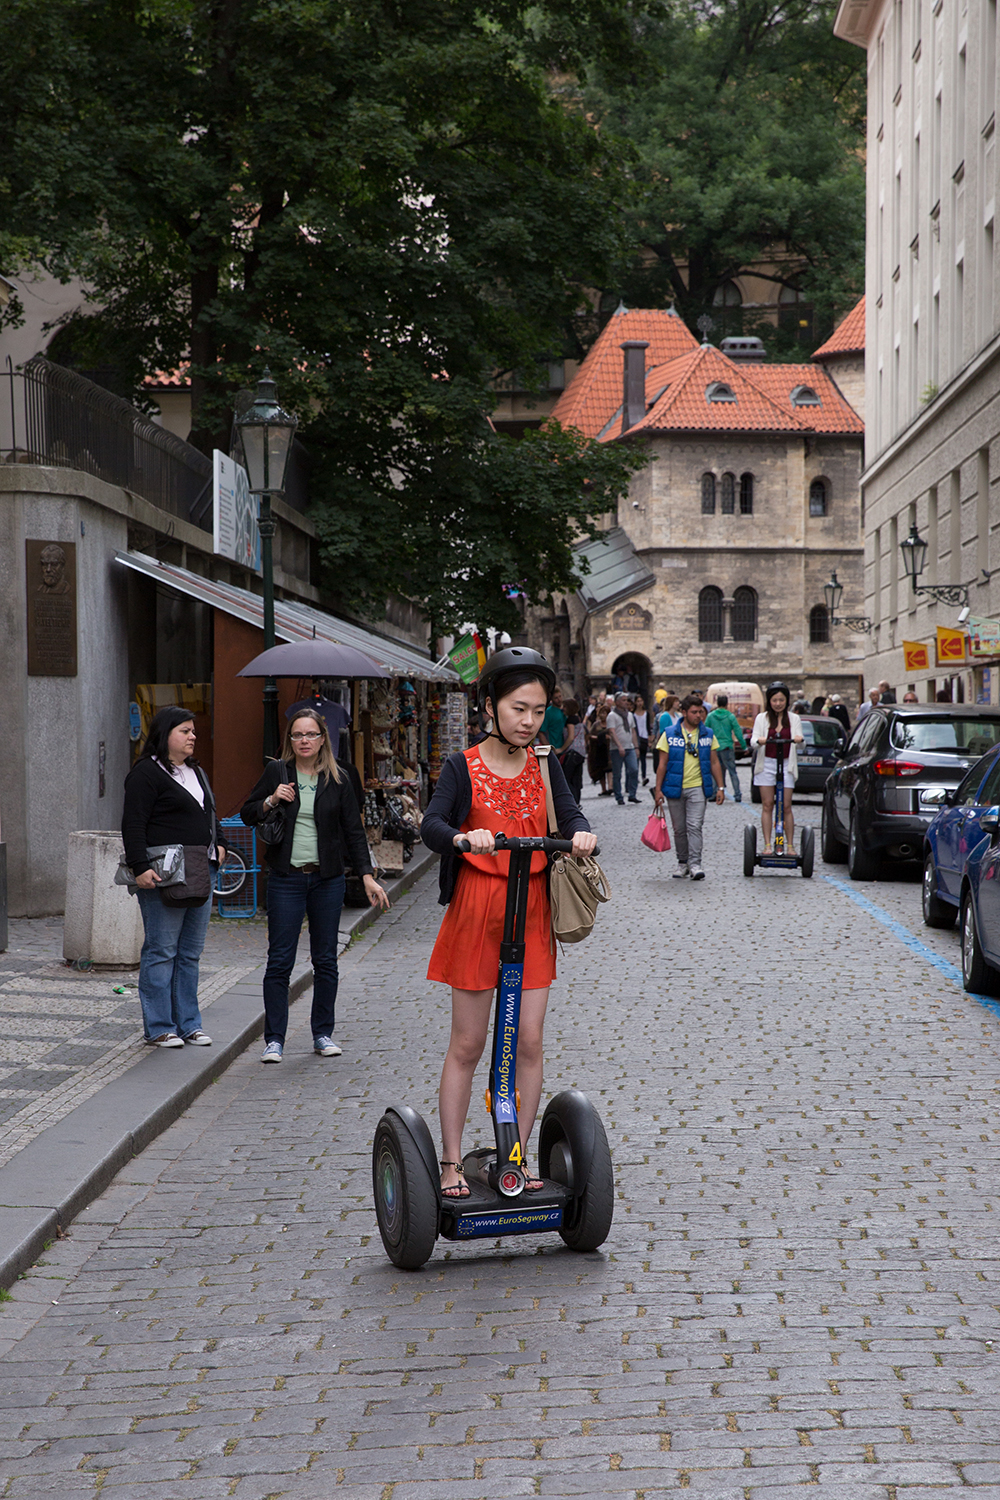 A documentary photograph of a tourist riding a segway around the streets of Prague, Czech Republic